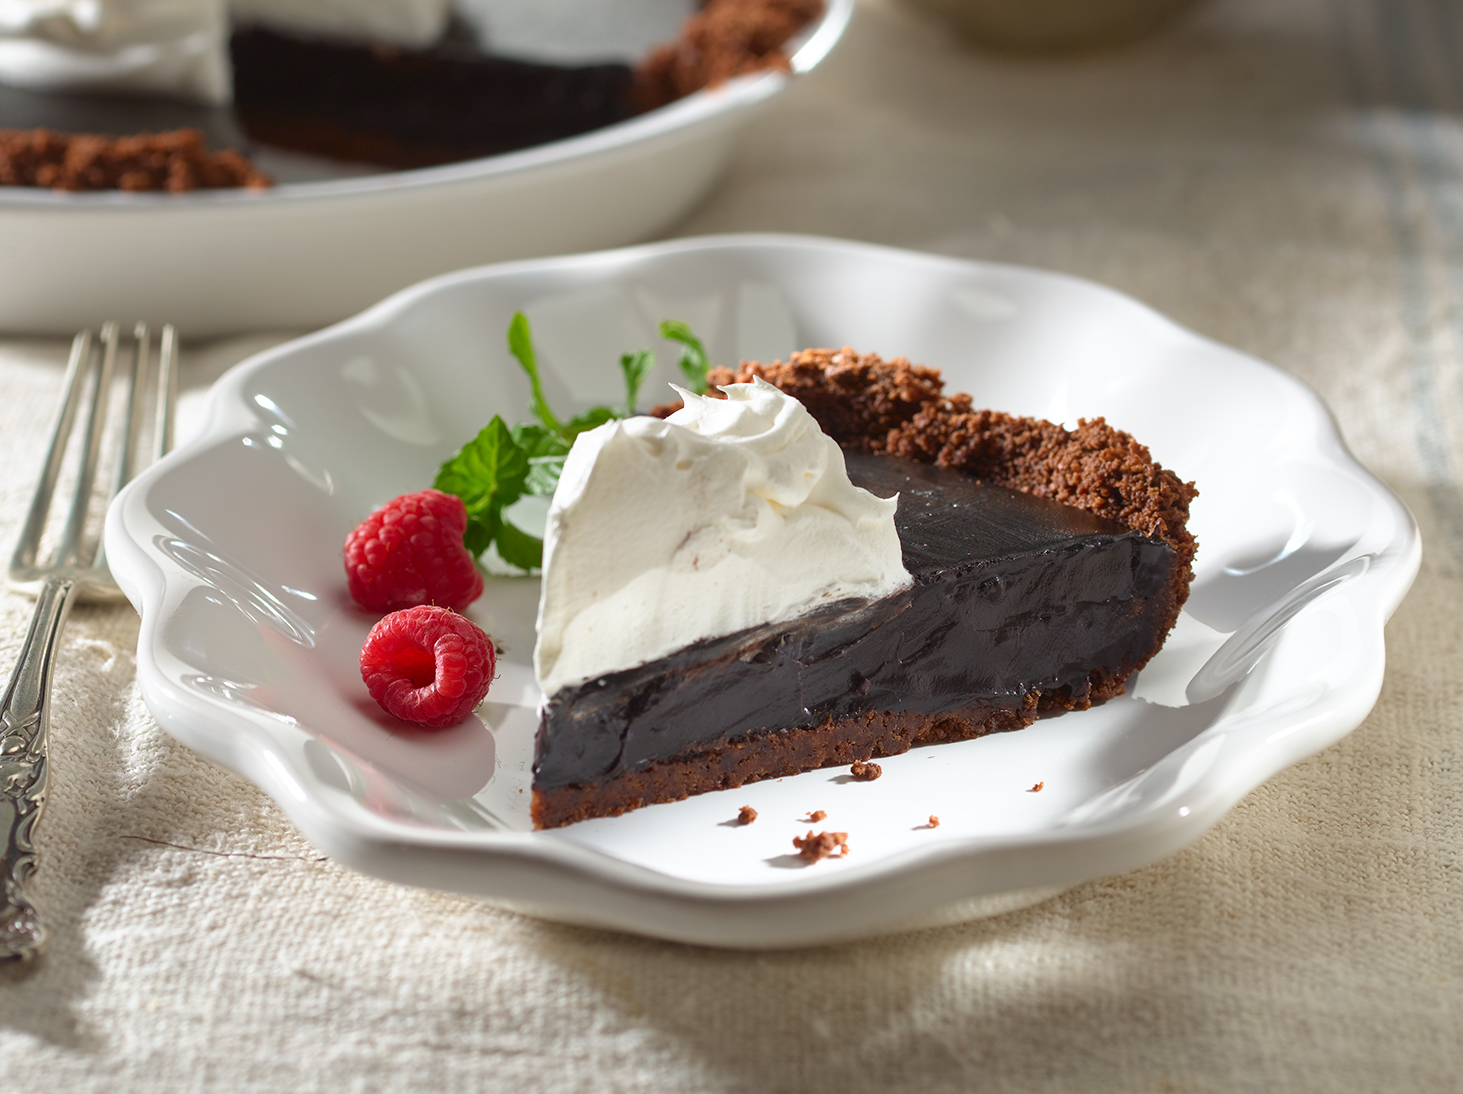 Coconut-Cream Chocolate Pie